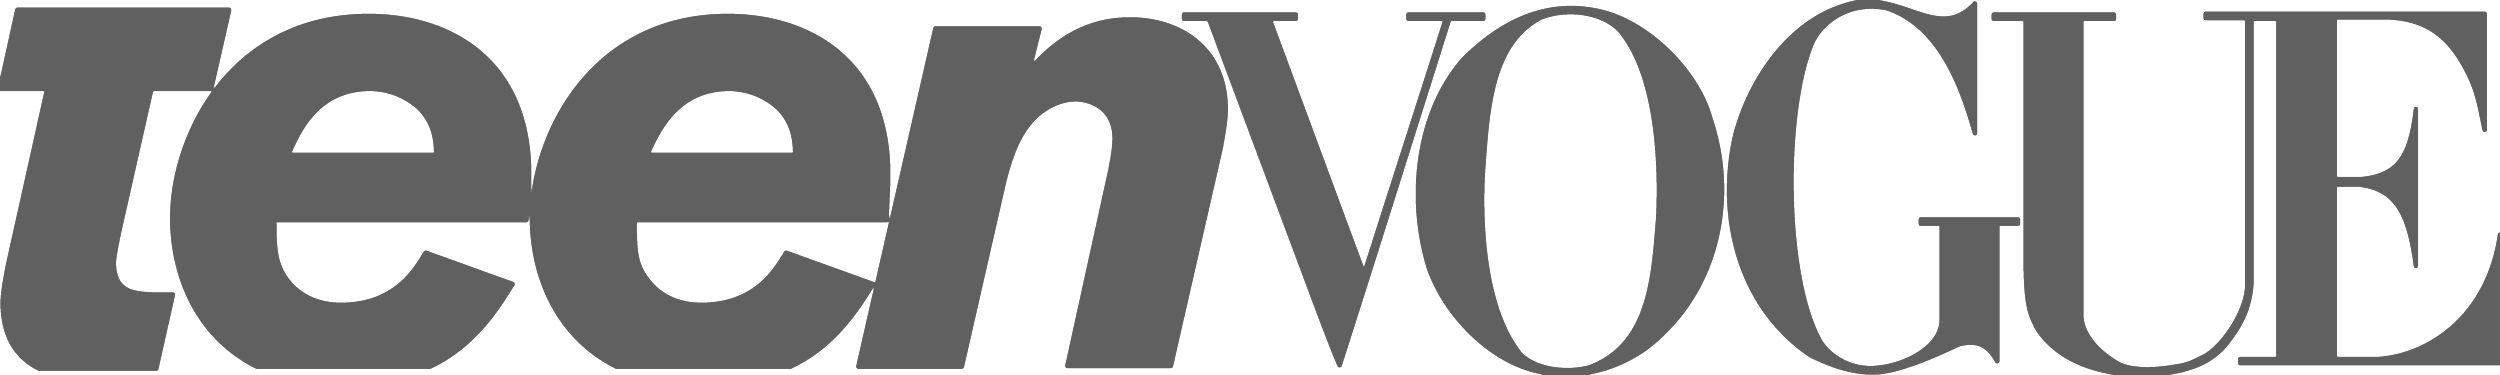 teen-vogue-logo-svg-vector_3.png